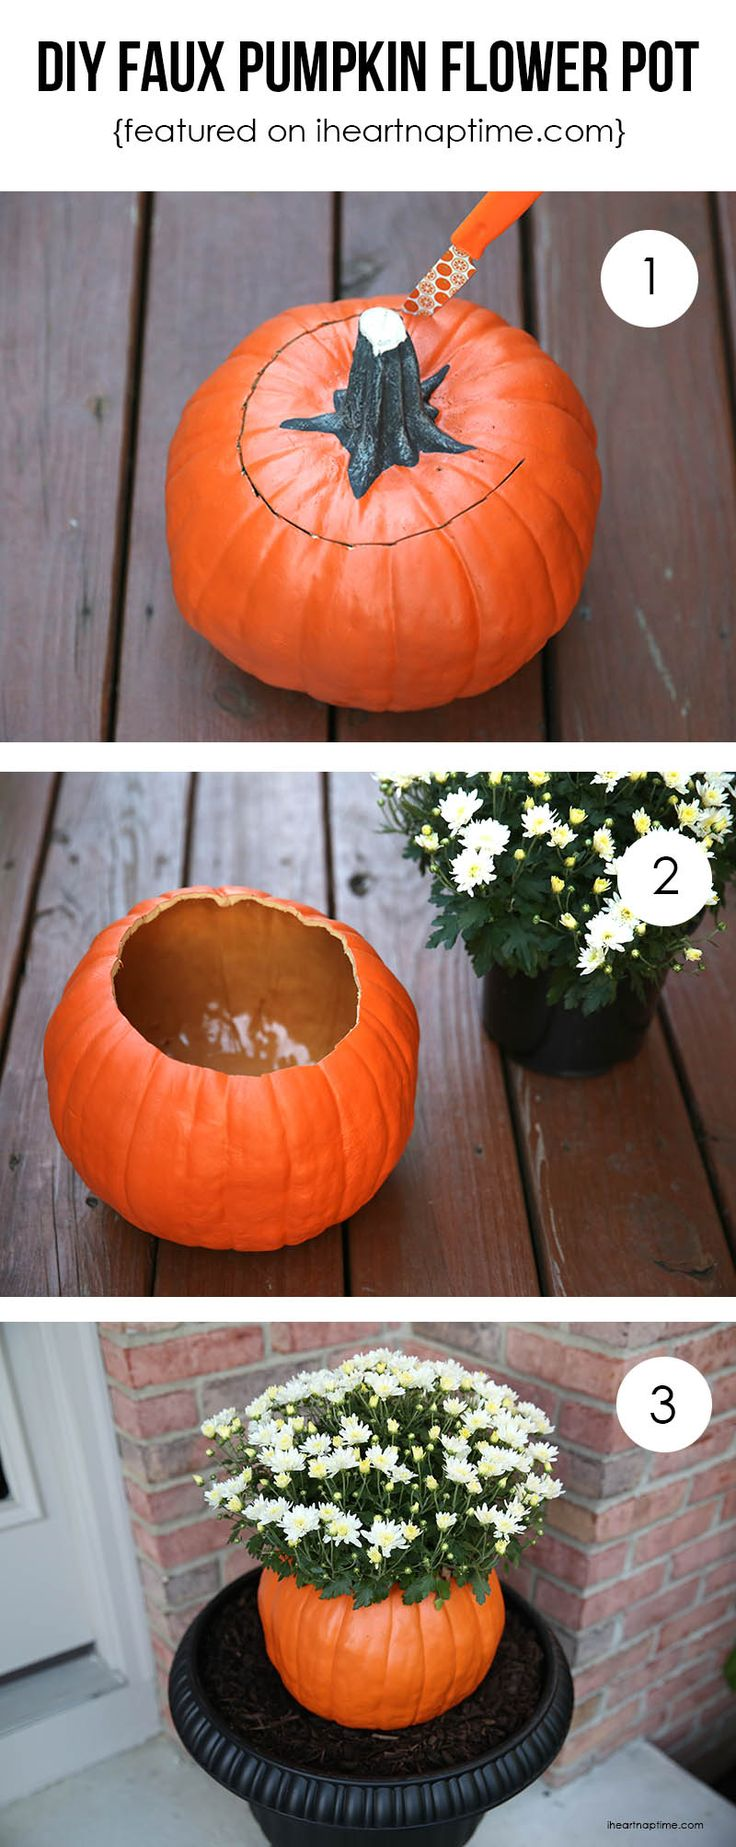 DIY faux pumpkin flower pot tutorial. Makes so much more sense (and will last way longer!) than a real pumpkin.: